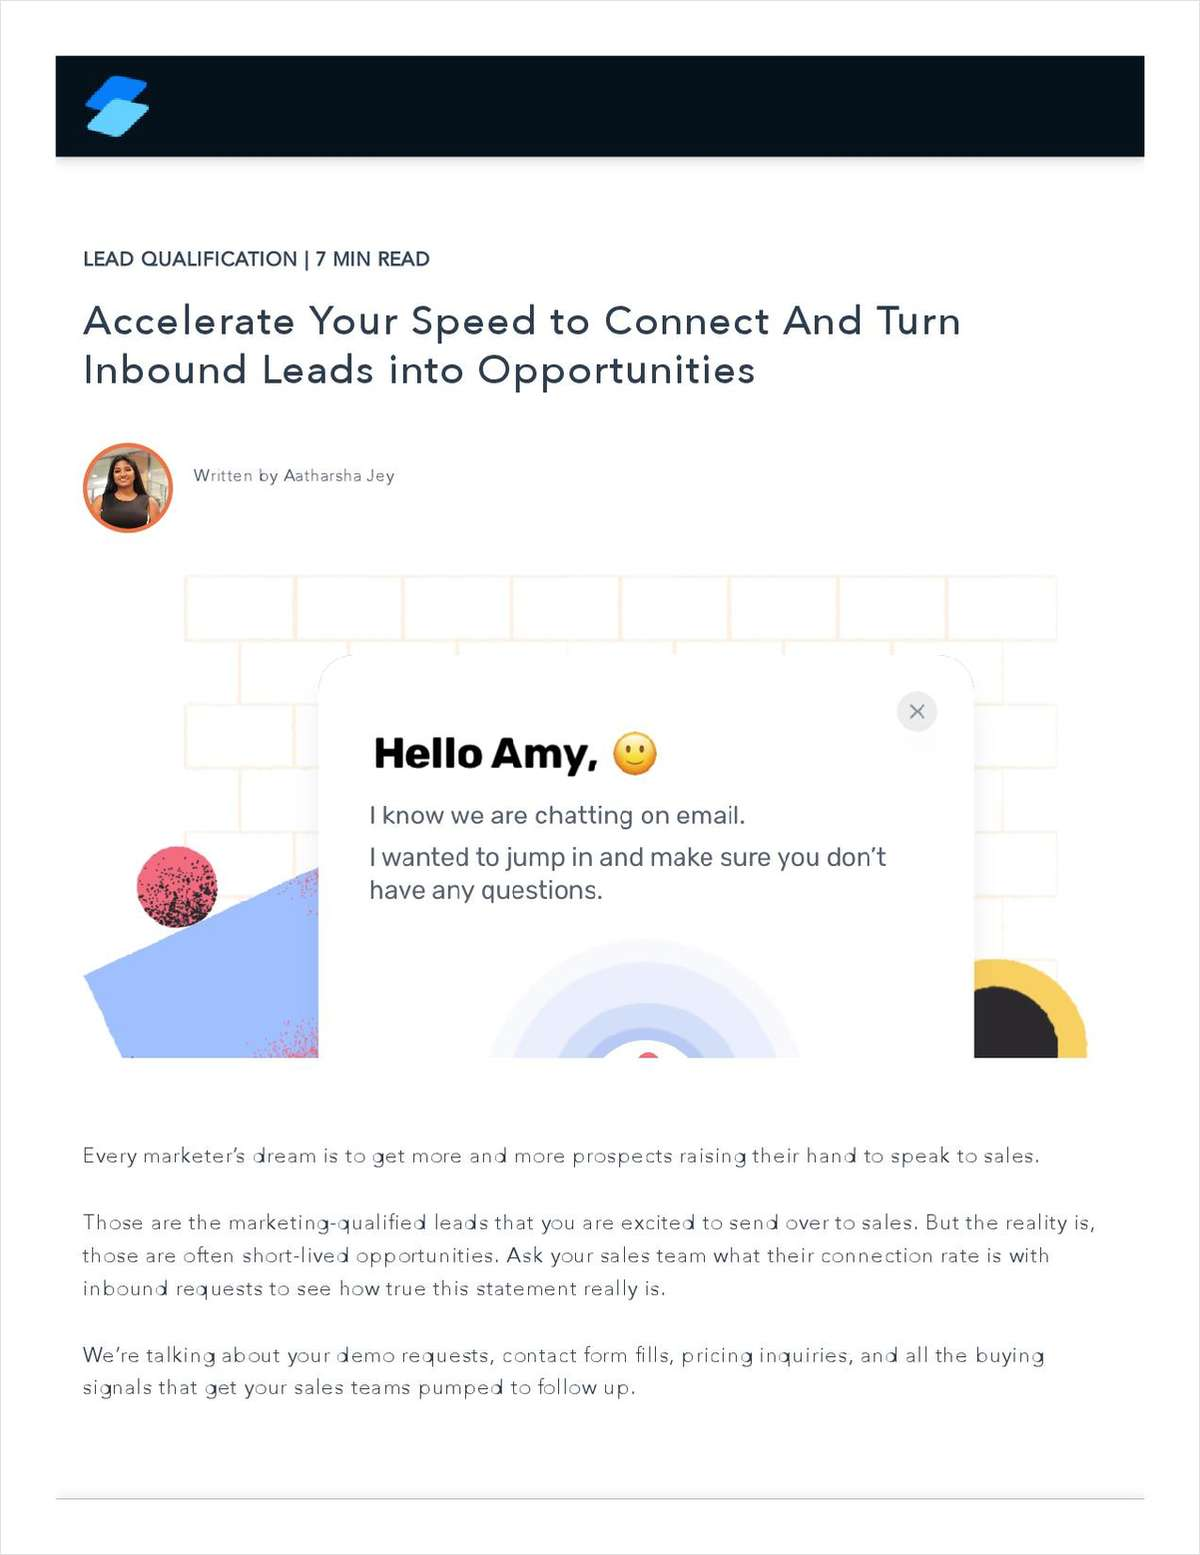 Accelerate Your Speed to Connect And Turn Inbound Leads into Opportunities